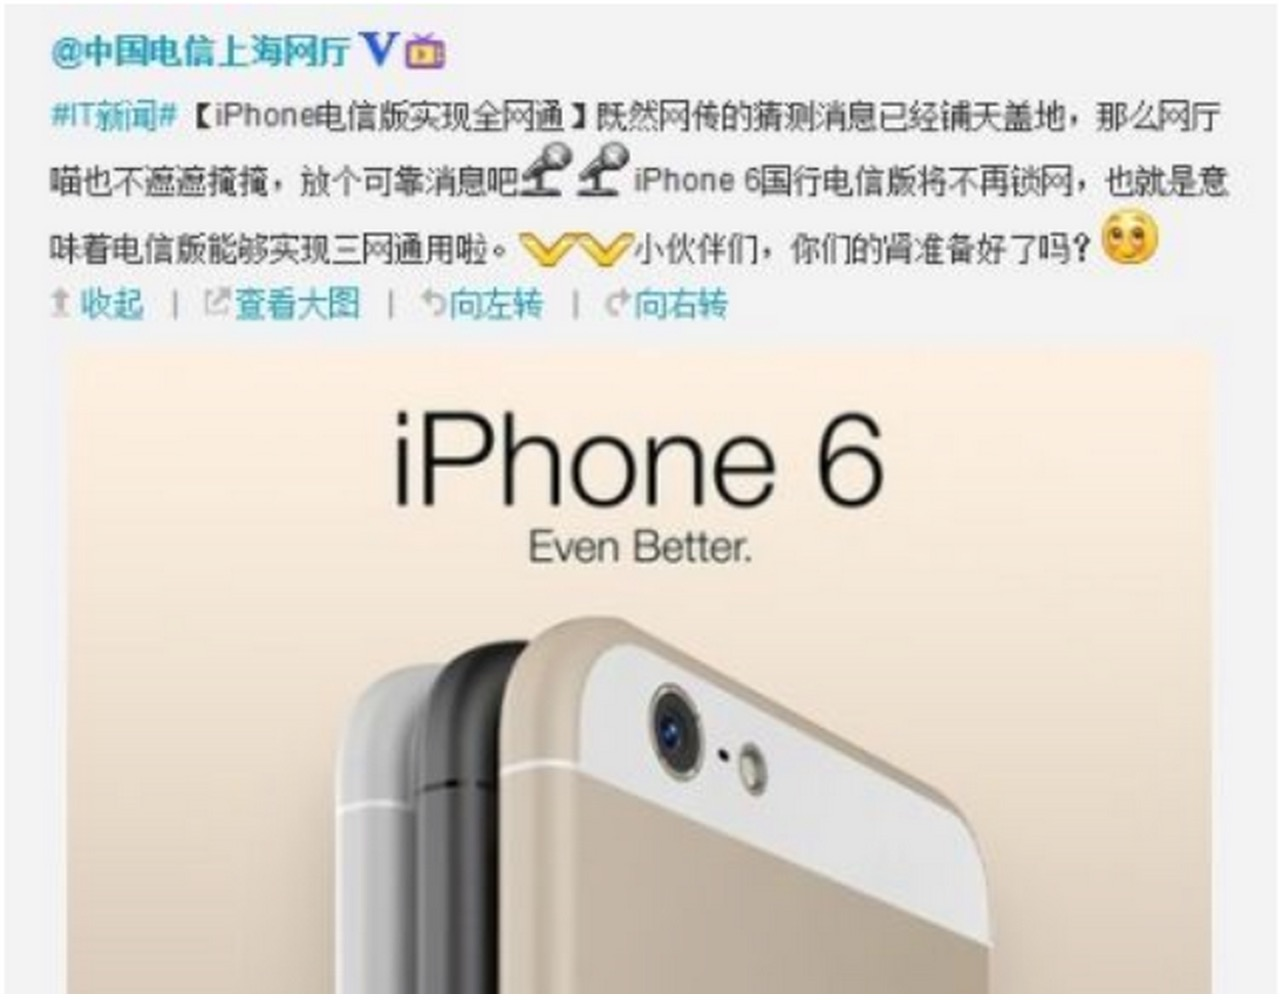 iphone 6 china telecom